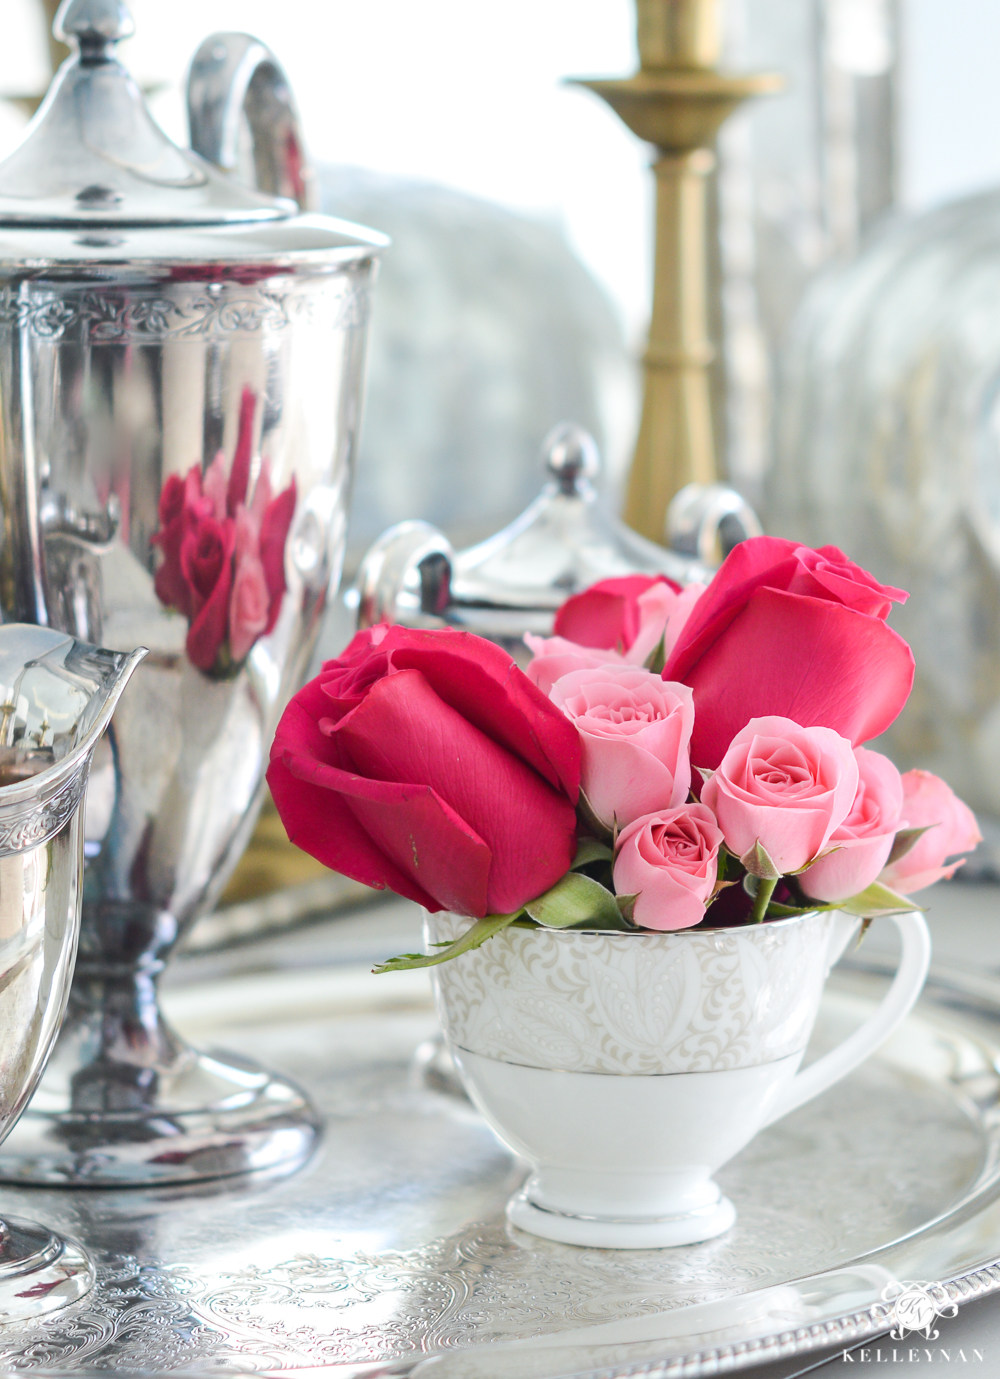 Roses in a teacup on a tea service